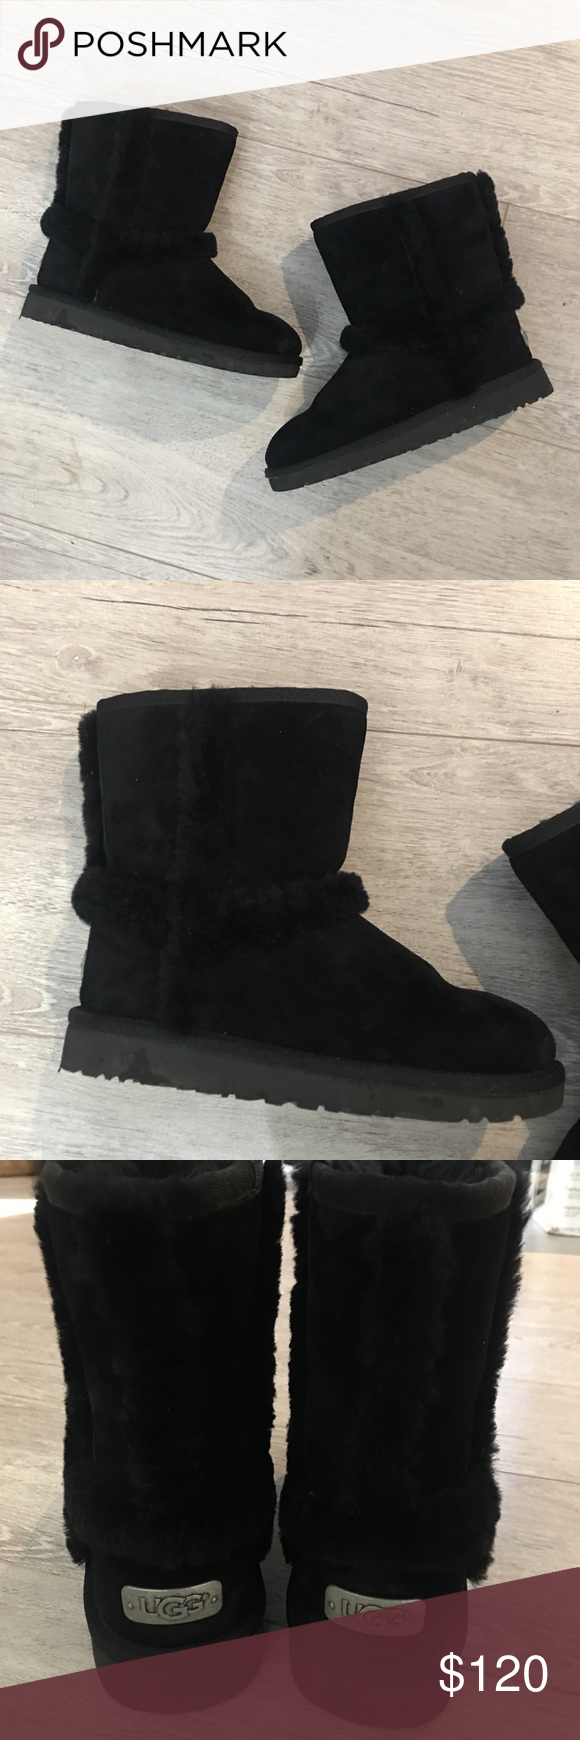 Black Girls Hadley Uggs Black Hadley Uggs great condition. Worn only 3-5 times. UGG Shoes Boots #uggbootsoutfitblackgirl Black Girls Hadley Uggs Black Hadley Uggs great condition. Worn only 3-5 times. UGG Shoes Boots #uggbootsoutfitblackgirl